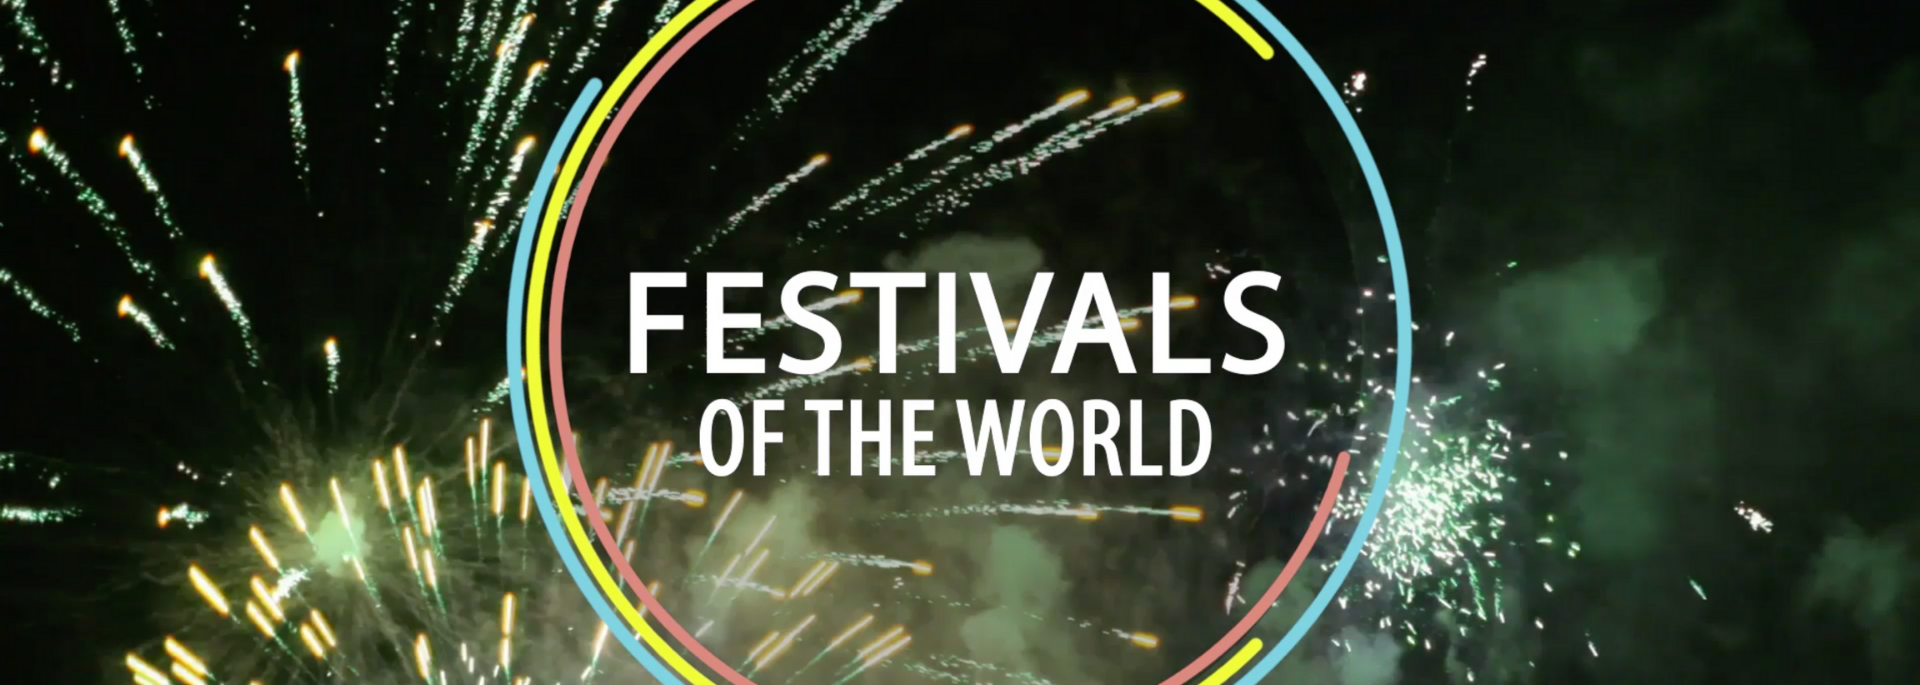 #FESTIVALS OF THE WORLD channel